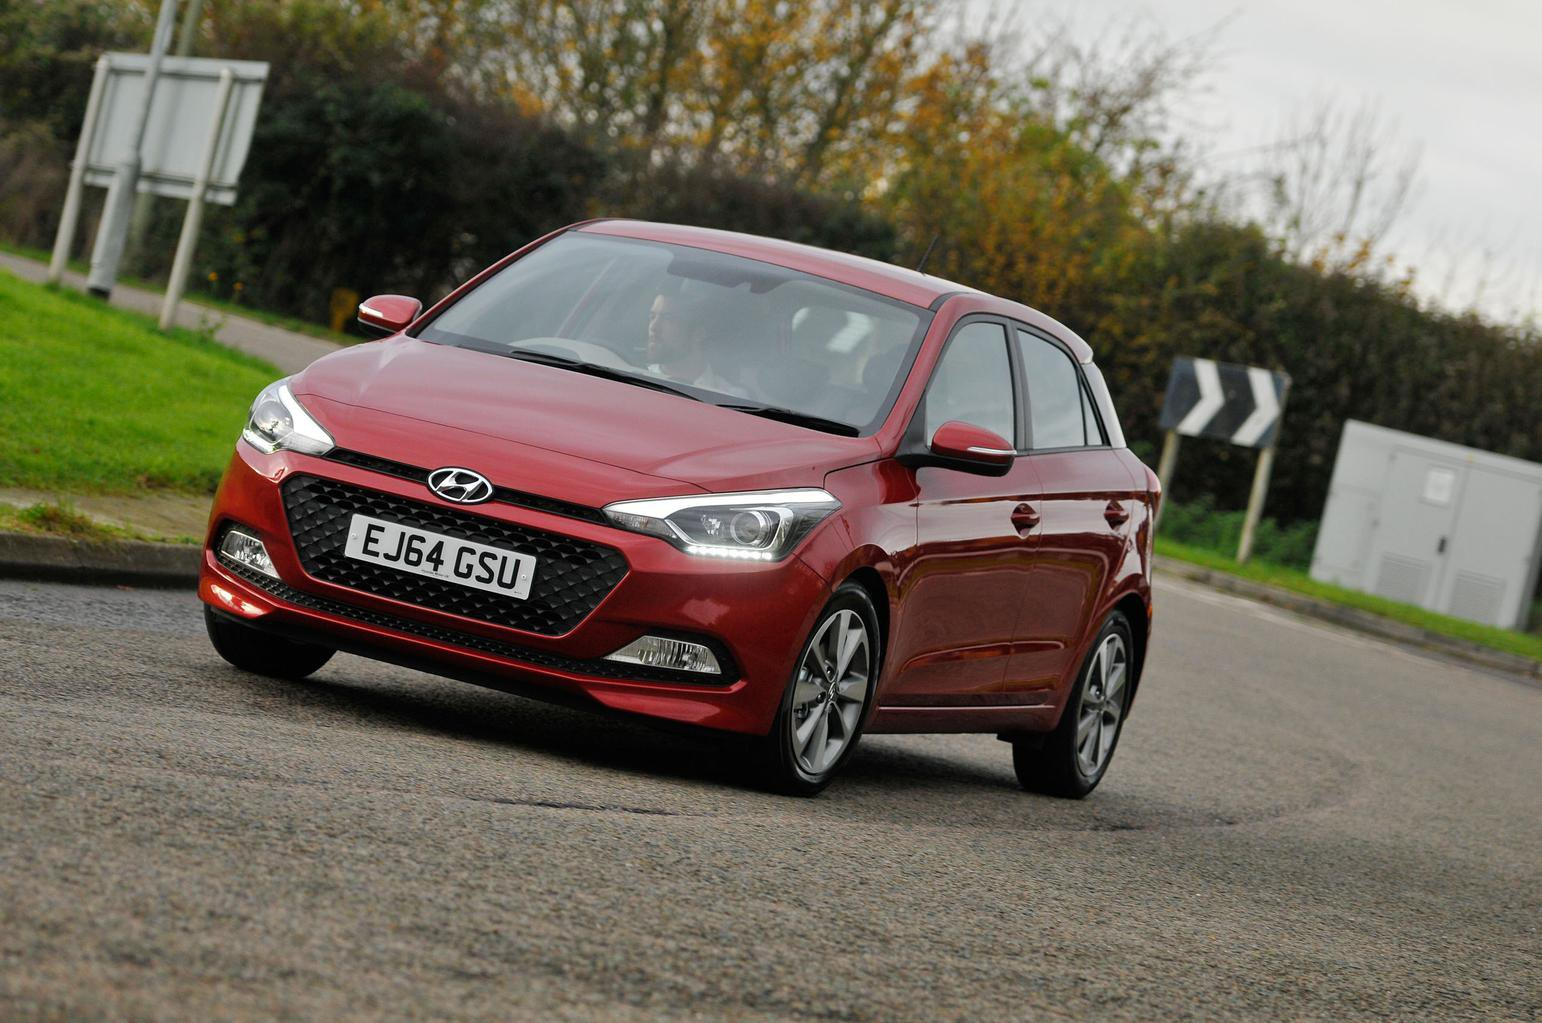 7 reasons to buy a Hyundai i20